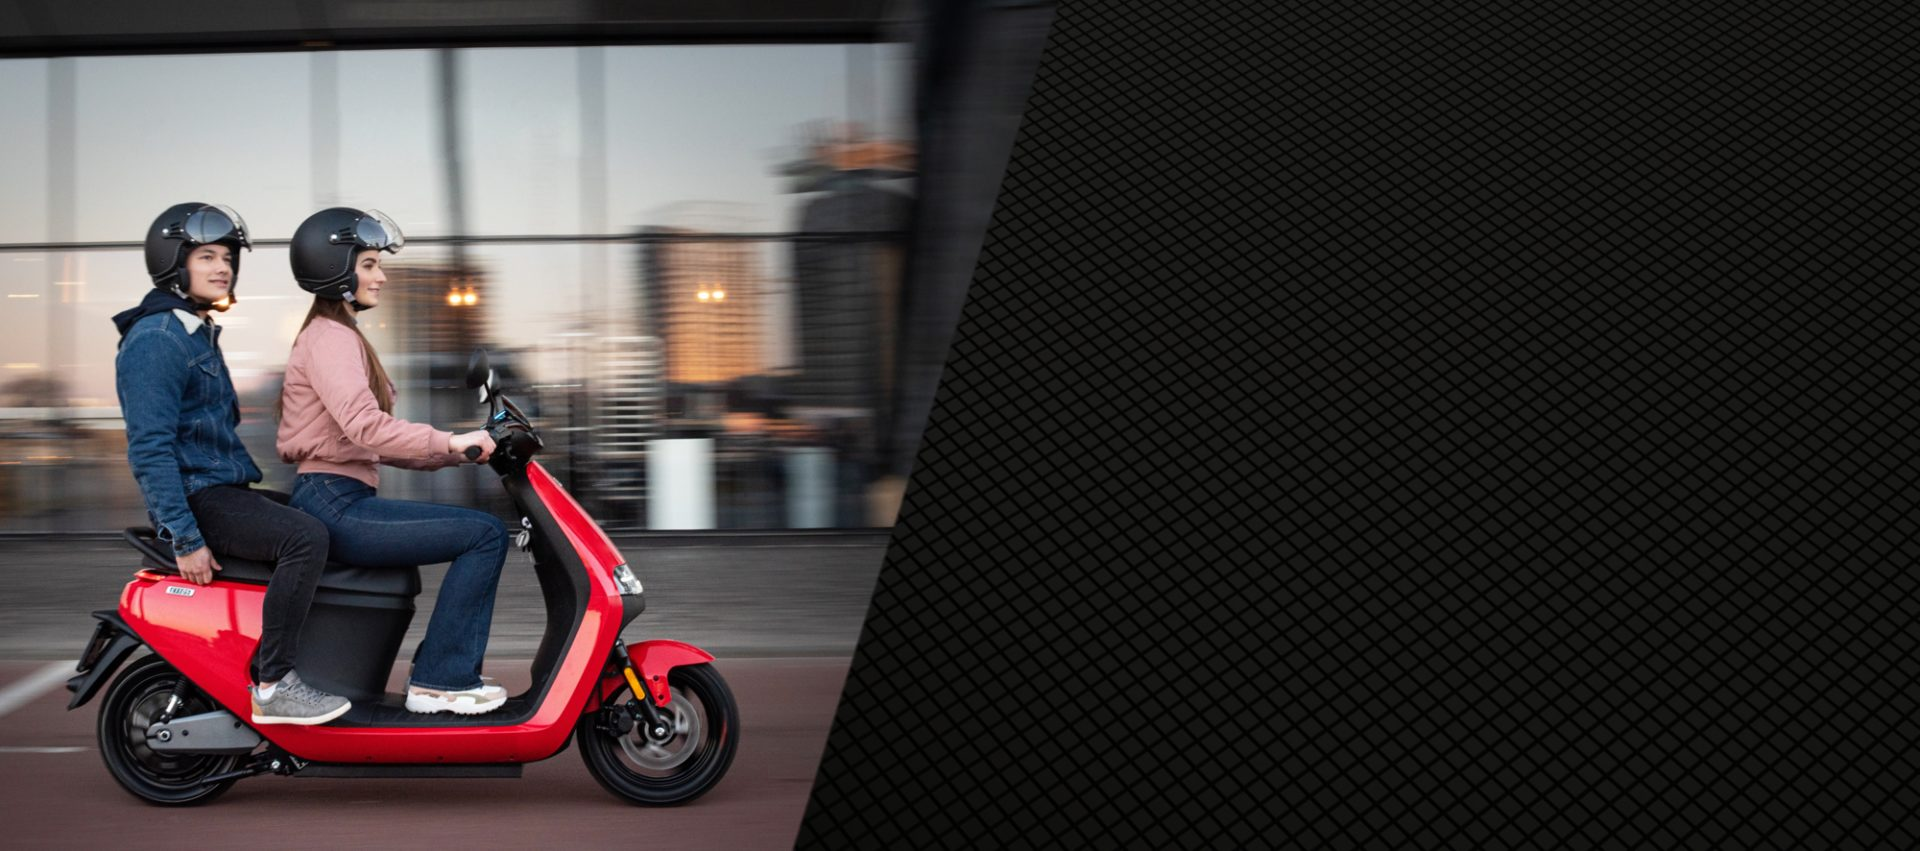 Customize and choose the riding mode that fits your need